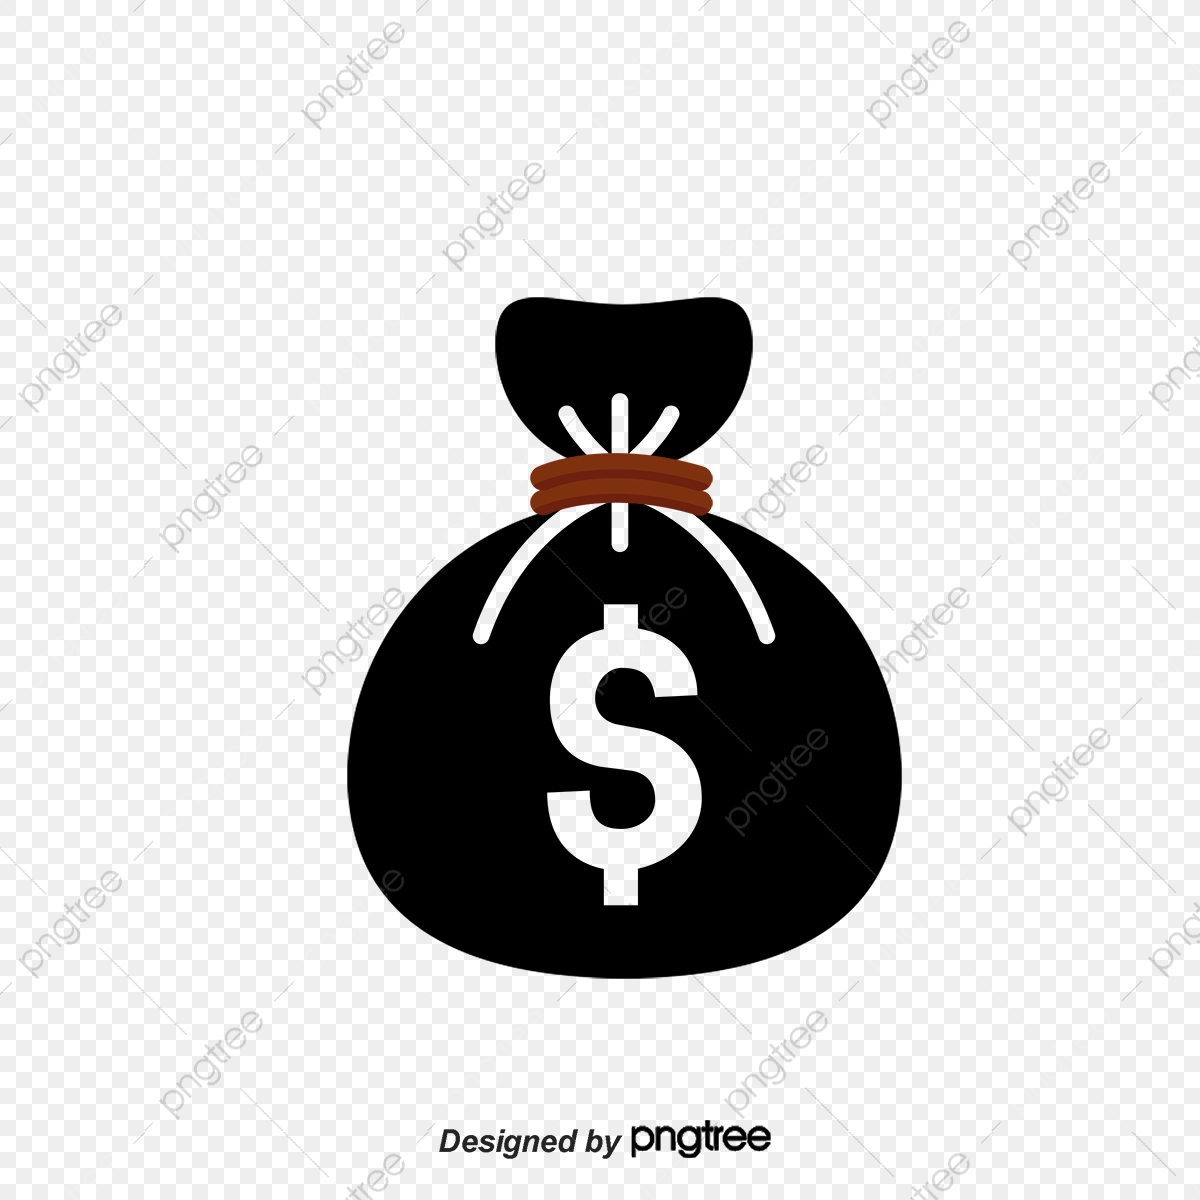 Flat Black Money Logo Black Vector Money Vector Logo Vector Png Transparent Clipart Image And Psd File For Free Download